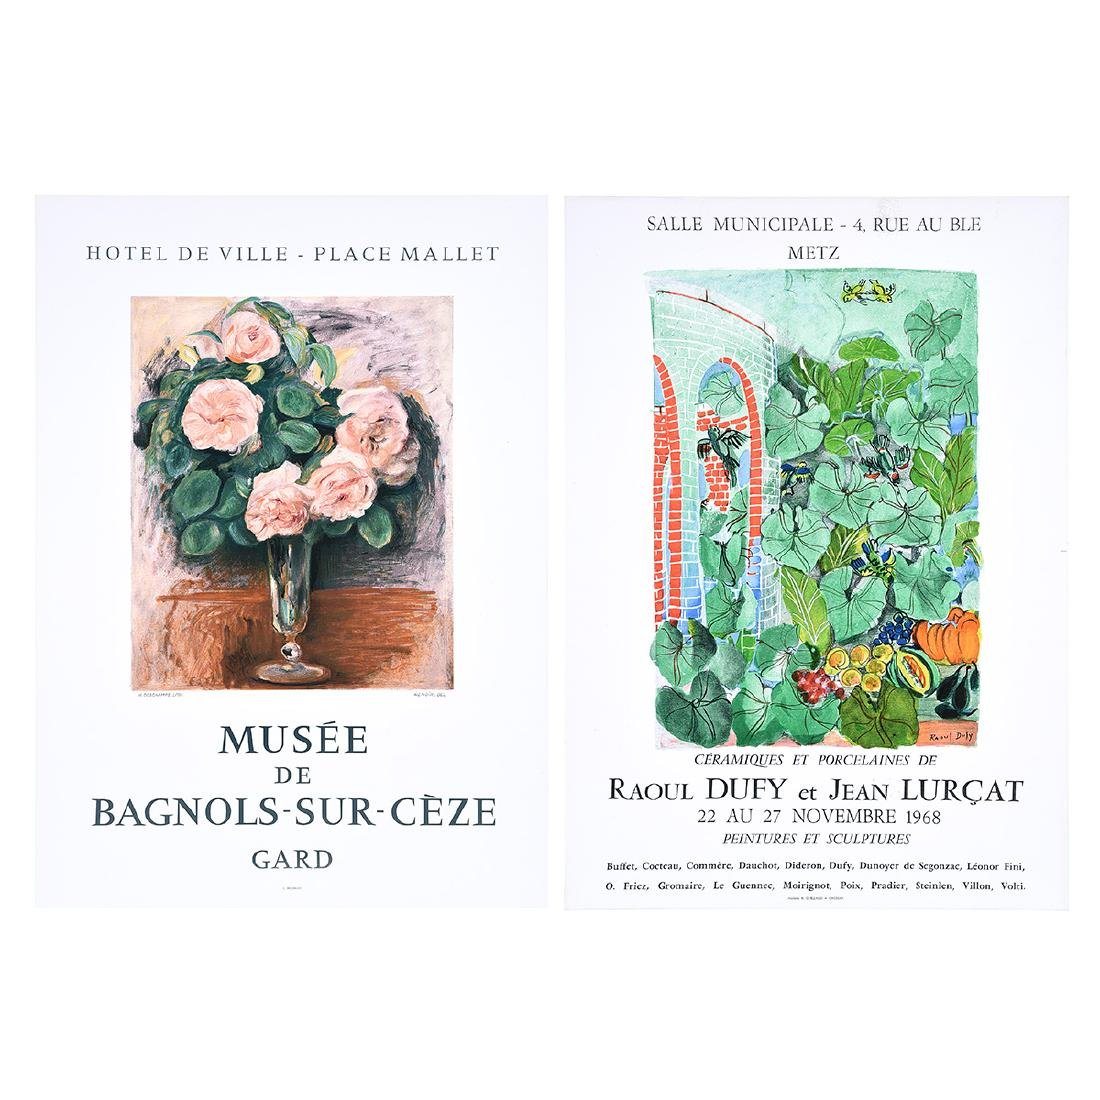 After Raoul Dufy and After Pierre Renoir lithograph